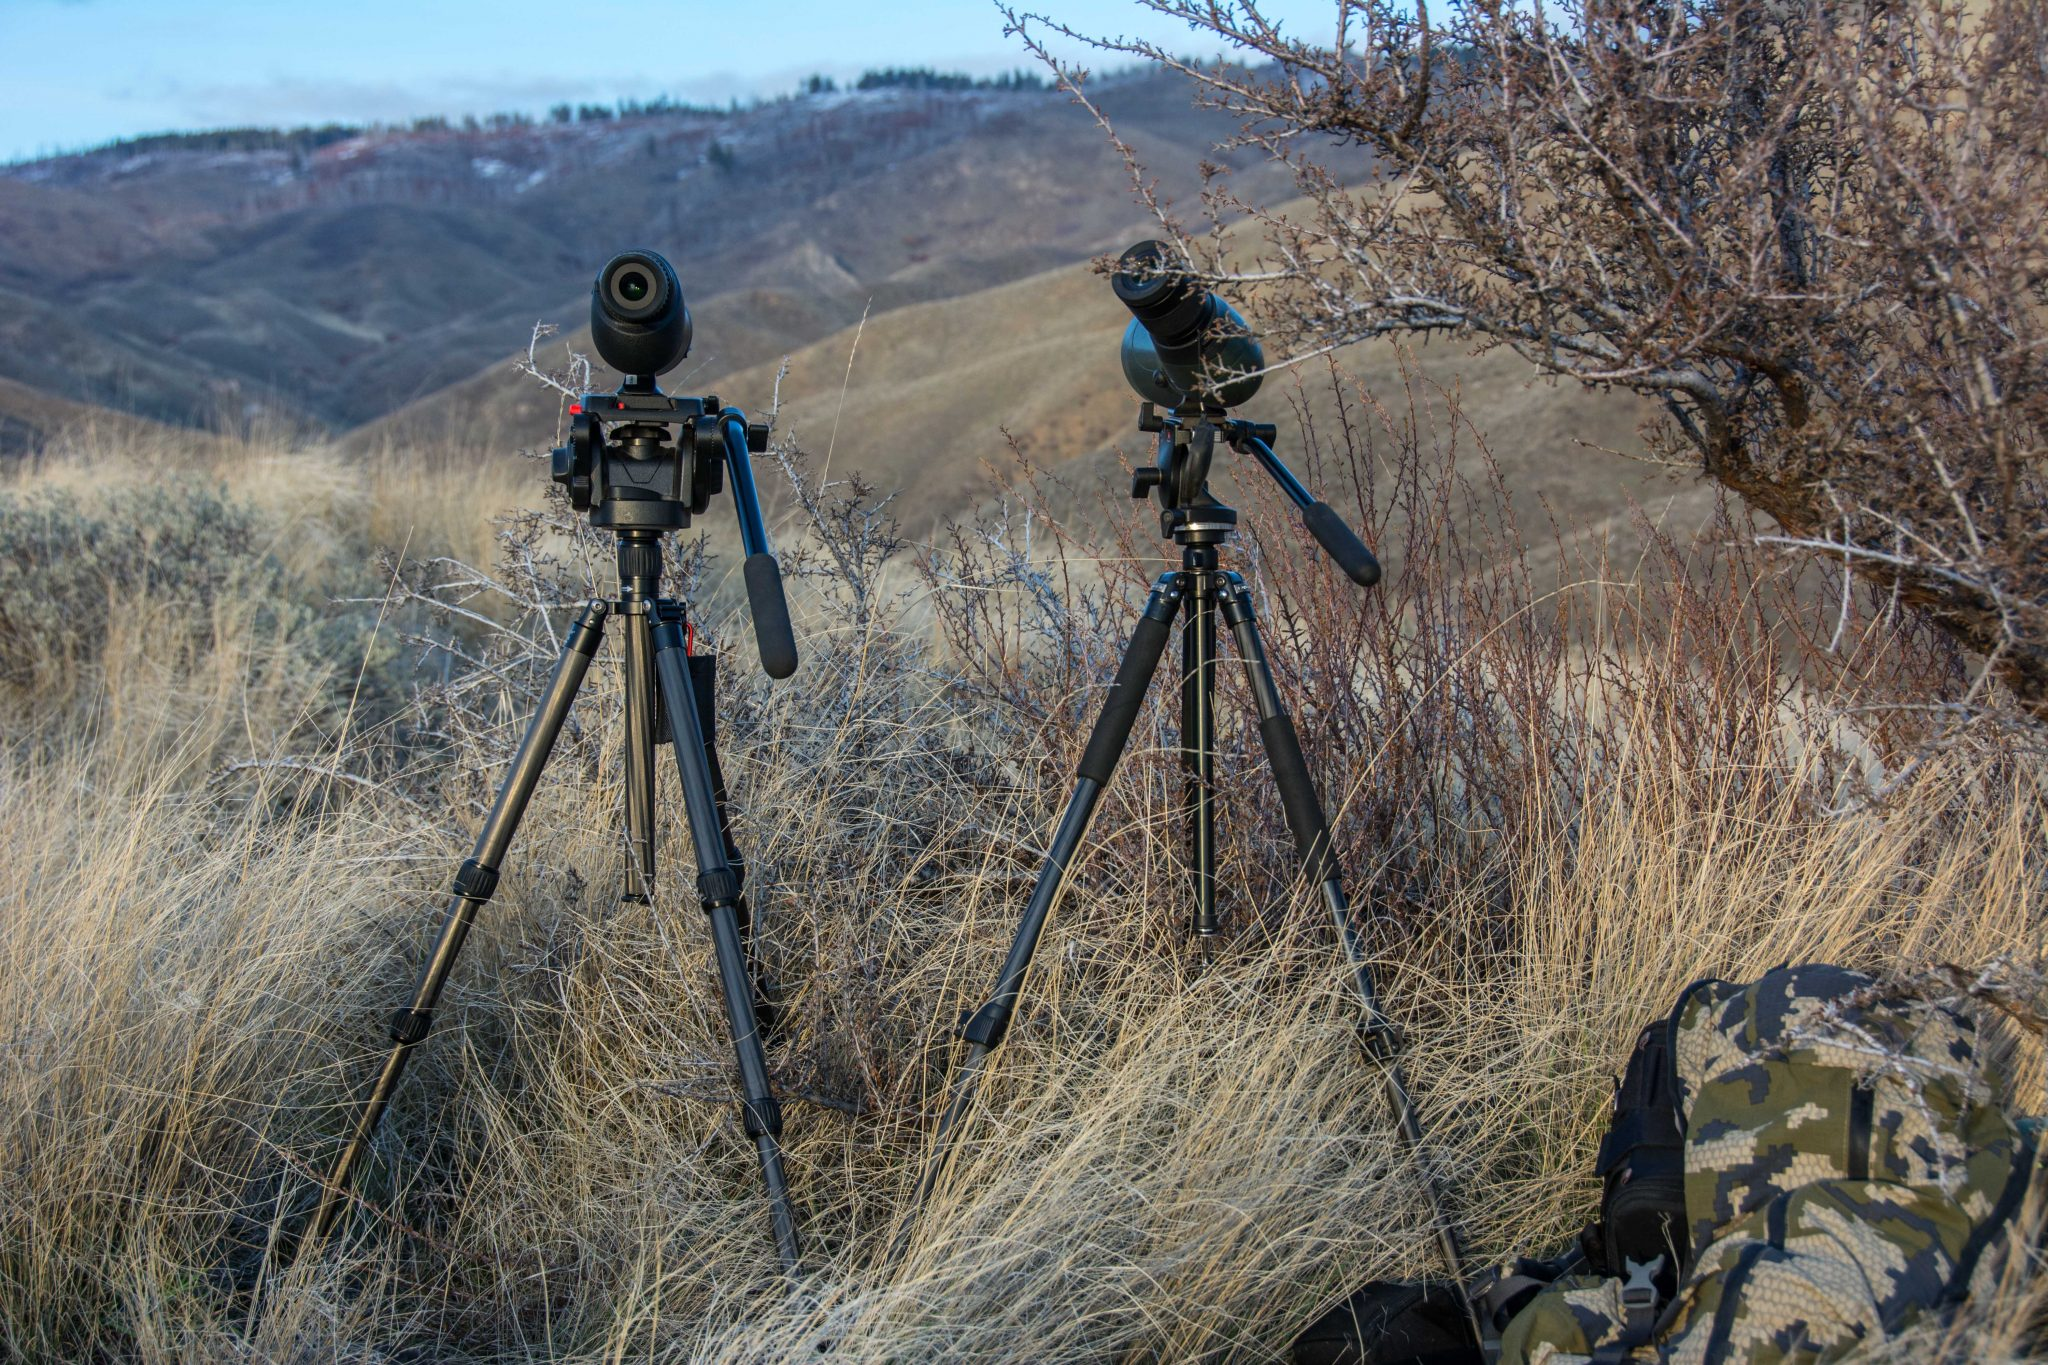 Glassing with both scopes